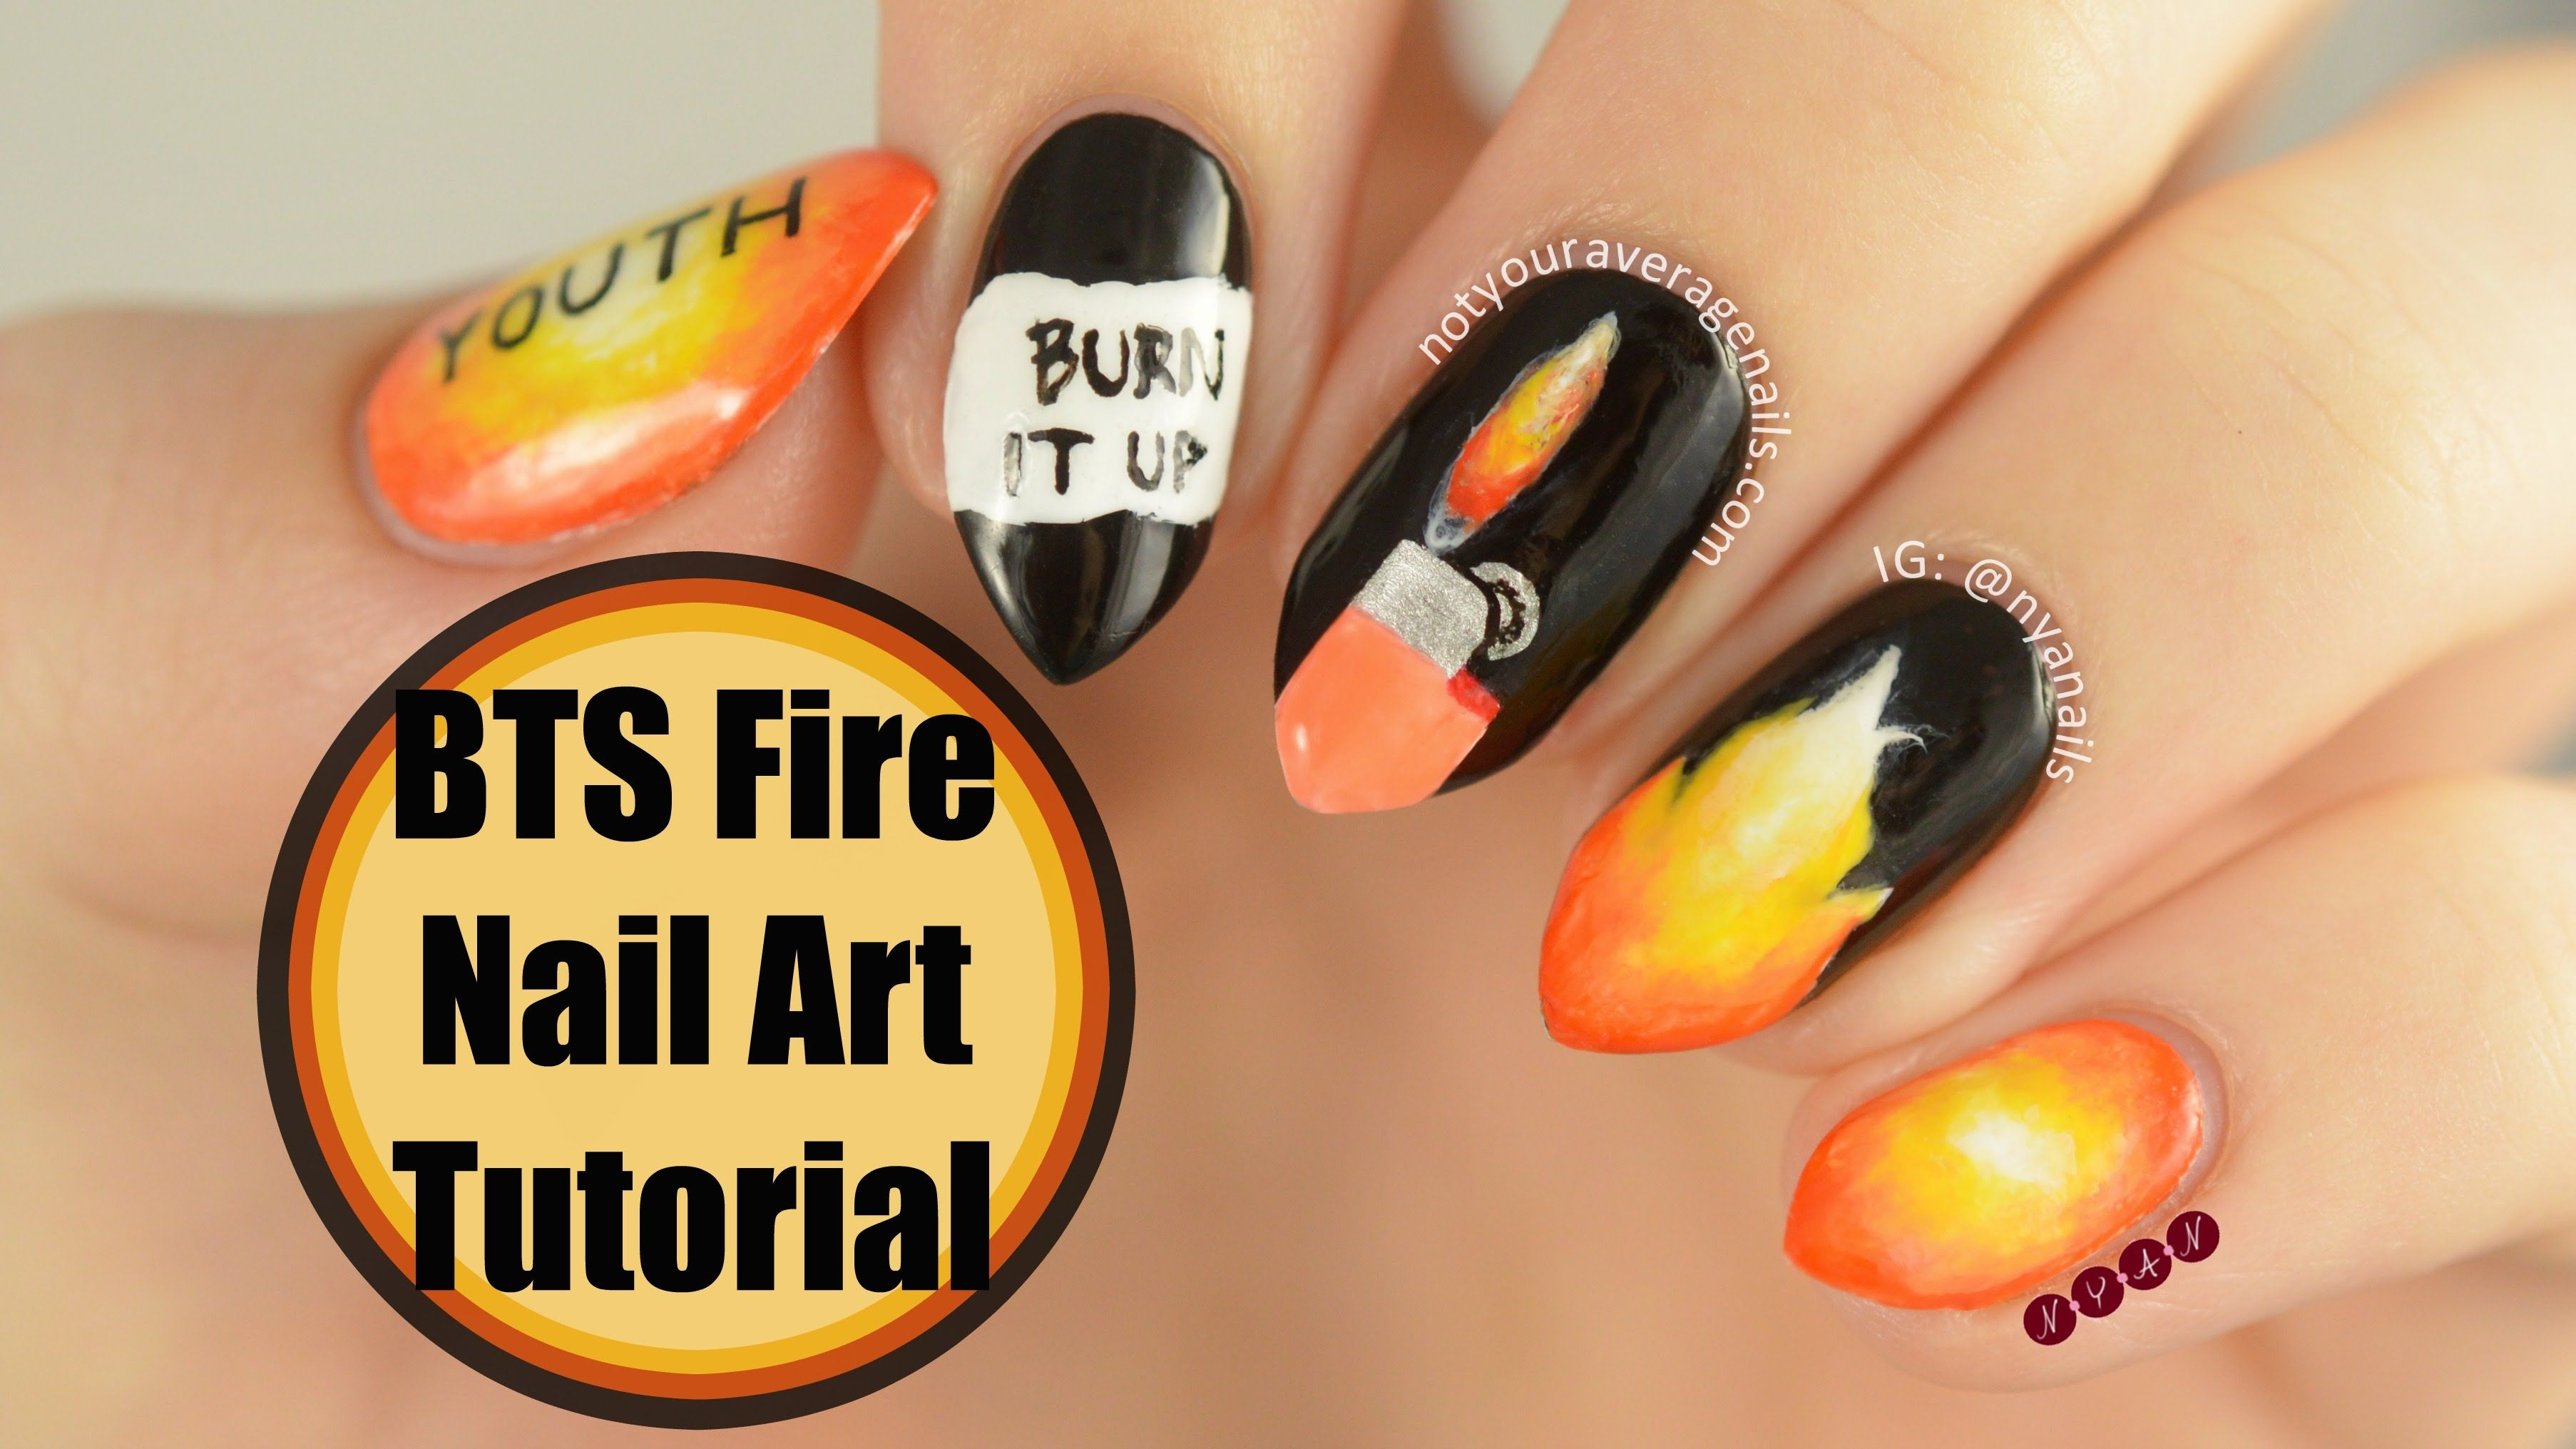 Bts fire nail art tutorial youtube nails pinterest fire bts fire nail art tutorial youtube prinsesfo Gallery